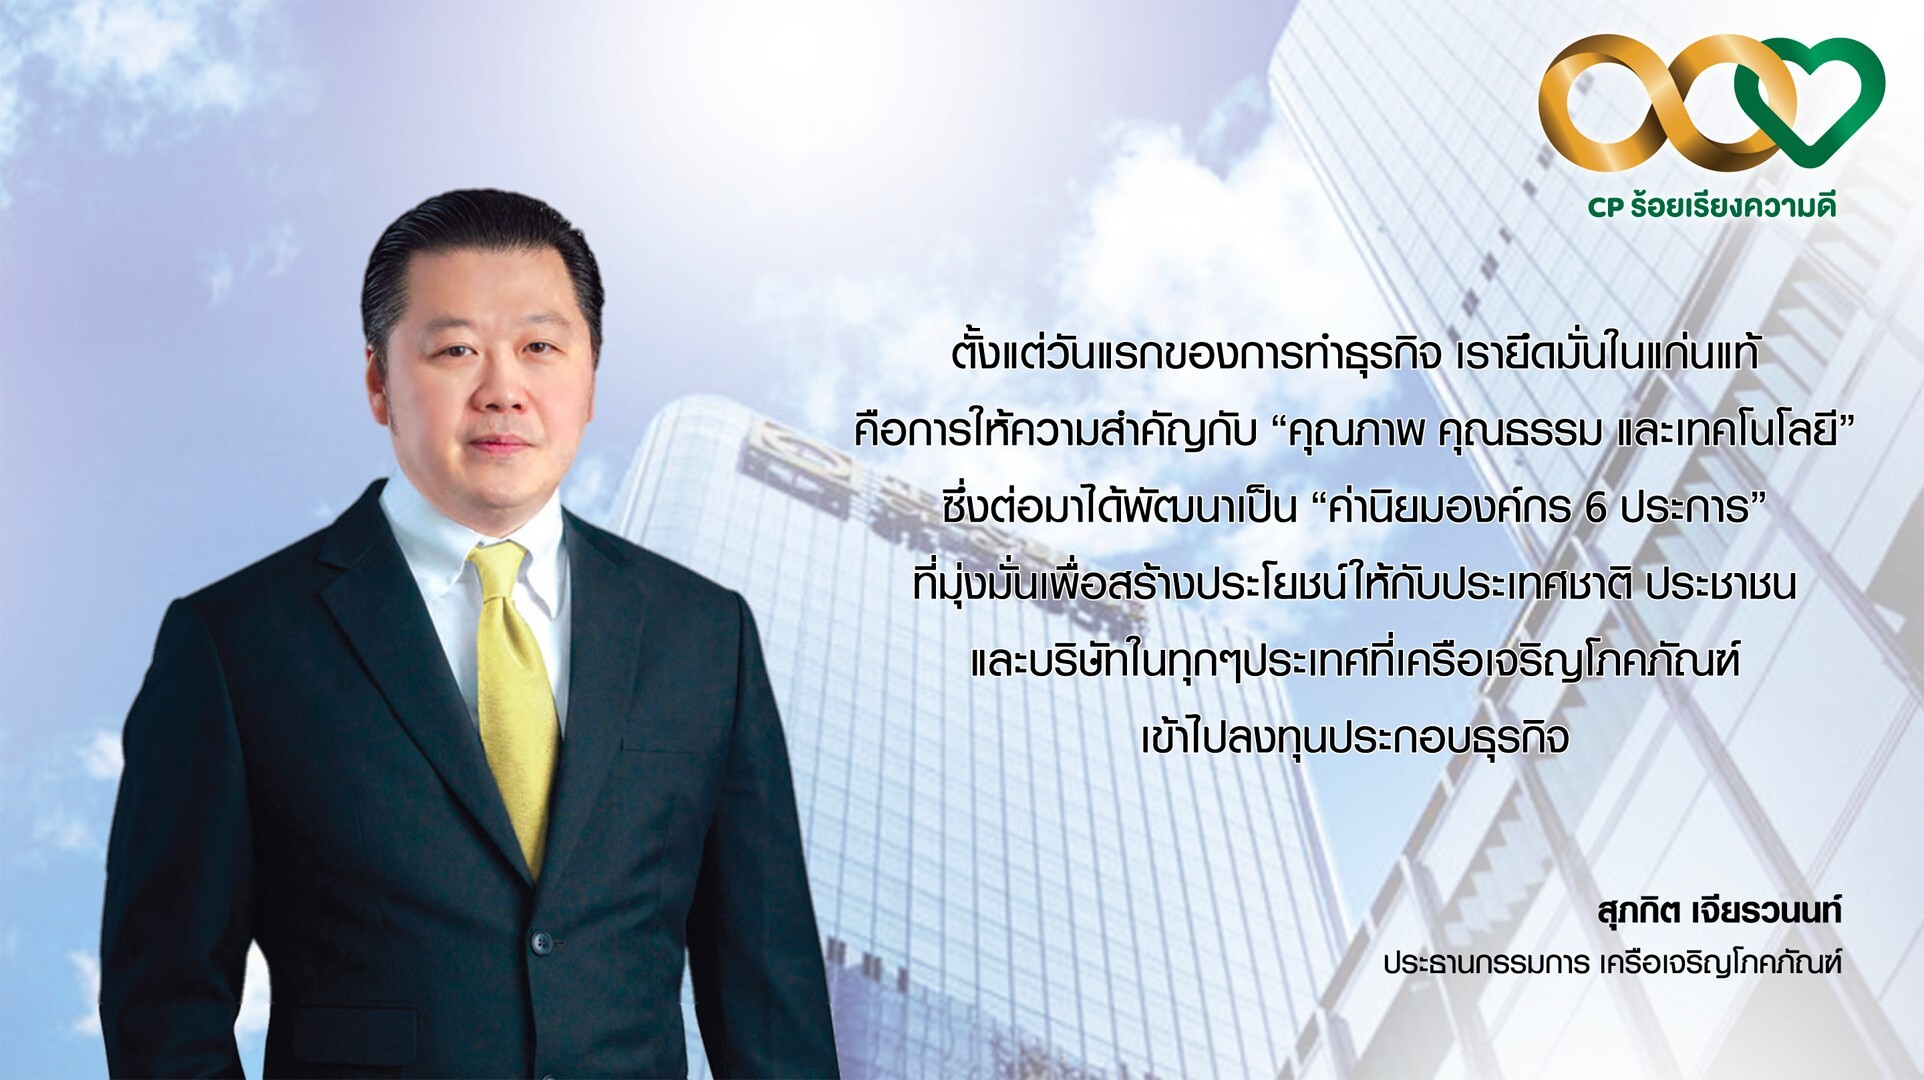 The Six Core Values vision  by CP Group - CP Foods chairman Soopakij Chearavanont